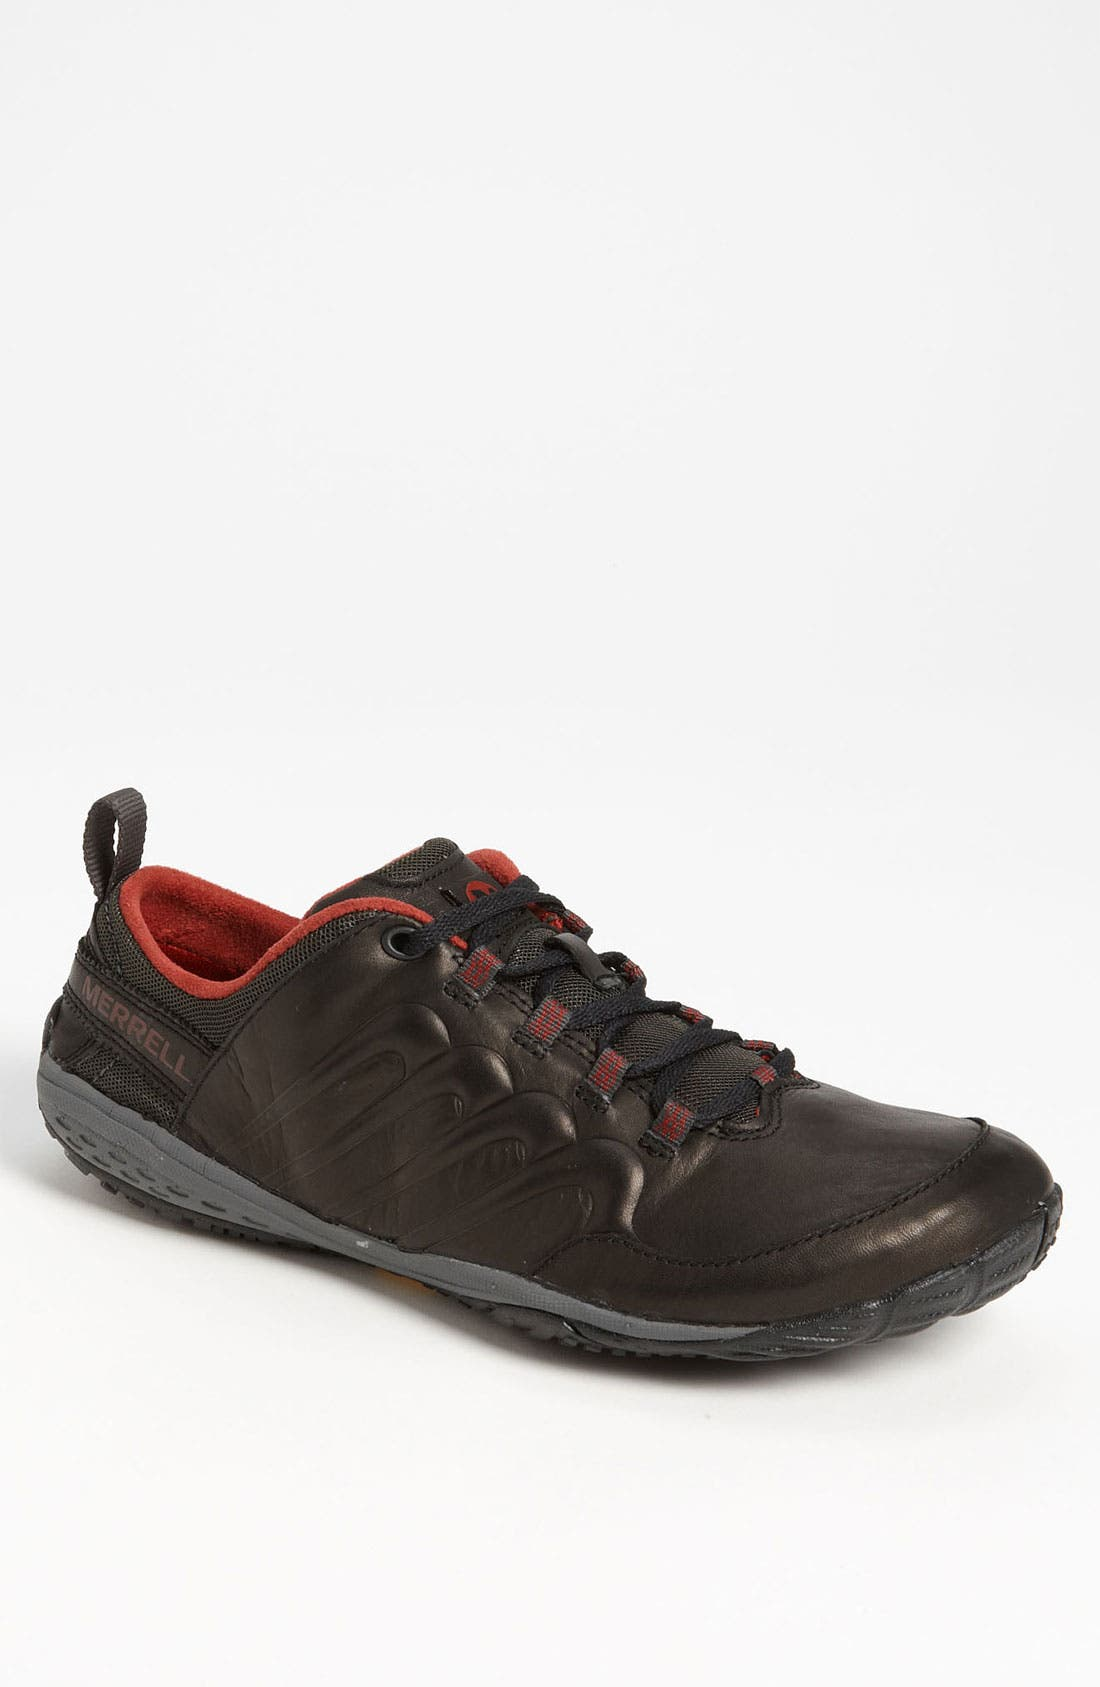 Alternate Image 1 Selected - Merrell 'Tour Glove' Sneaker (Men)